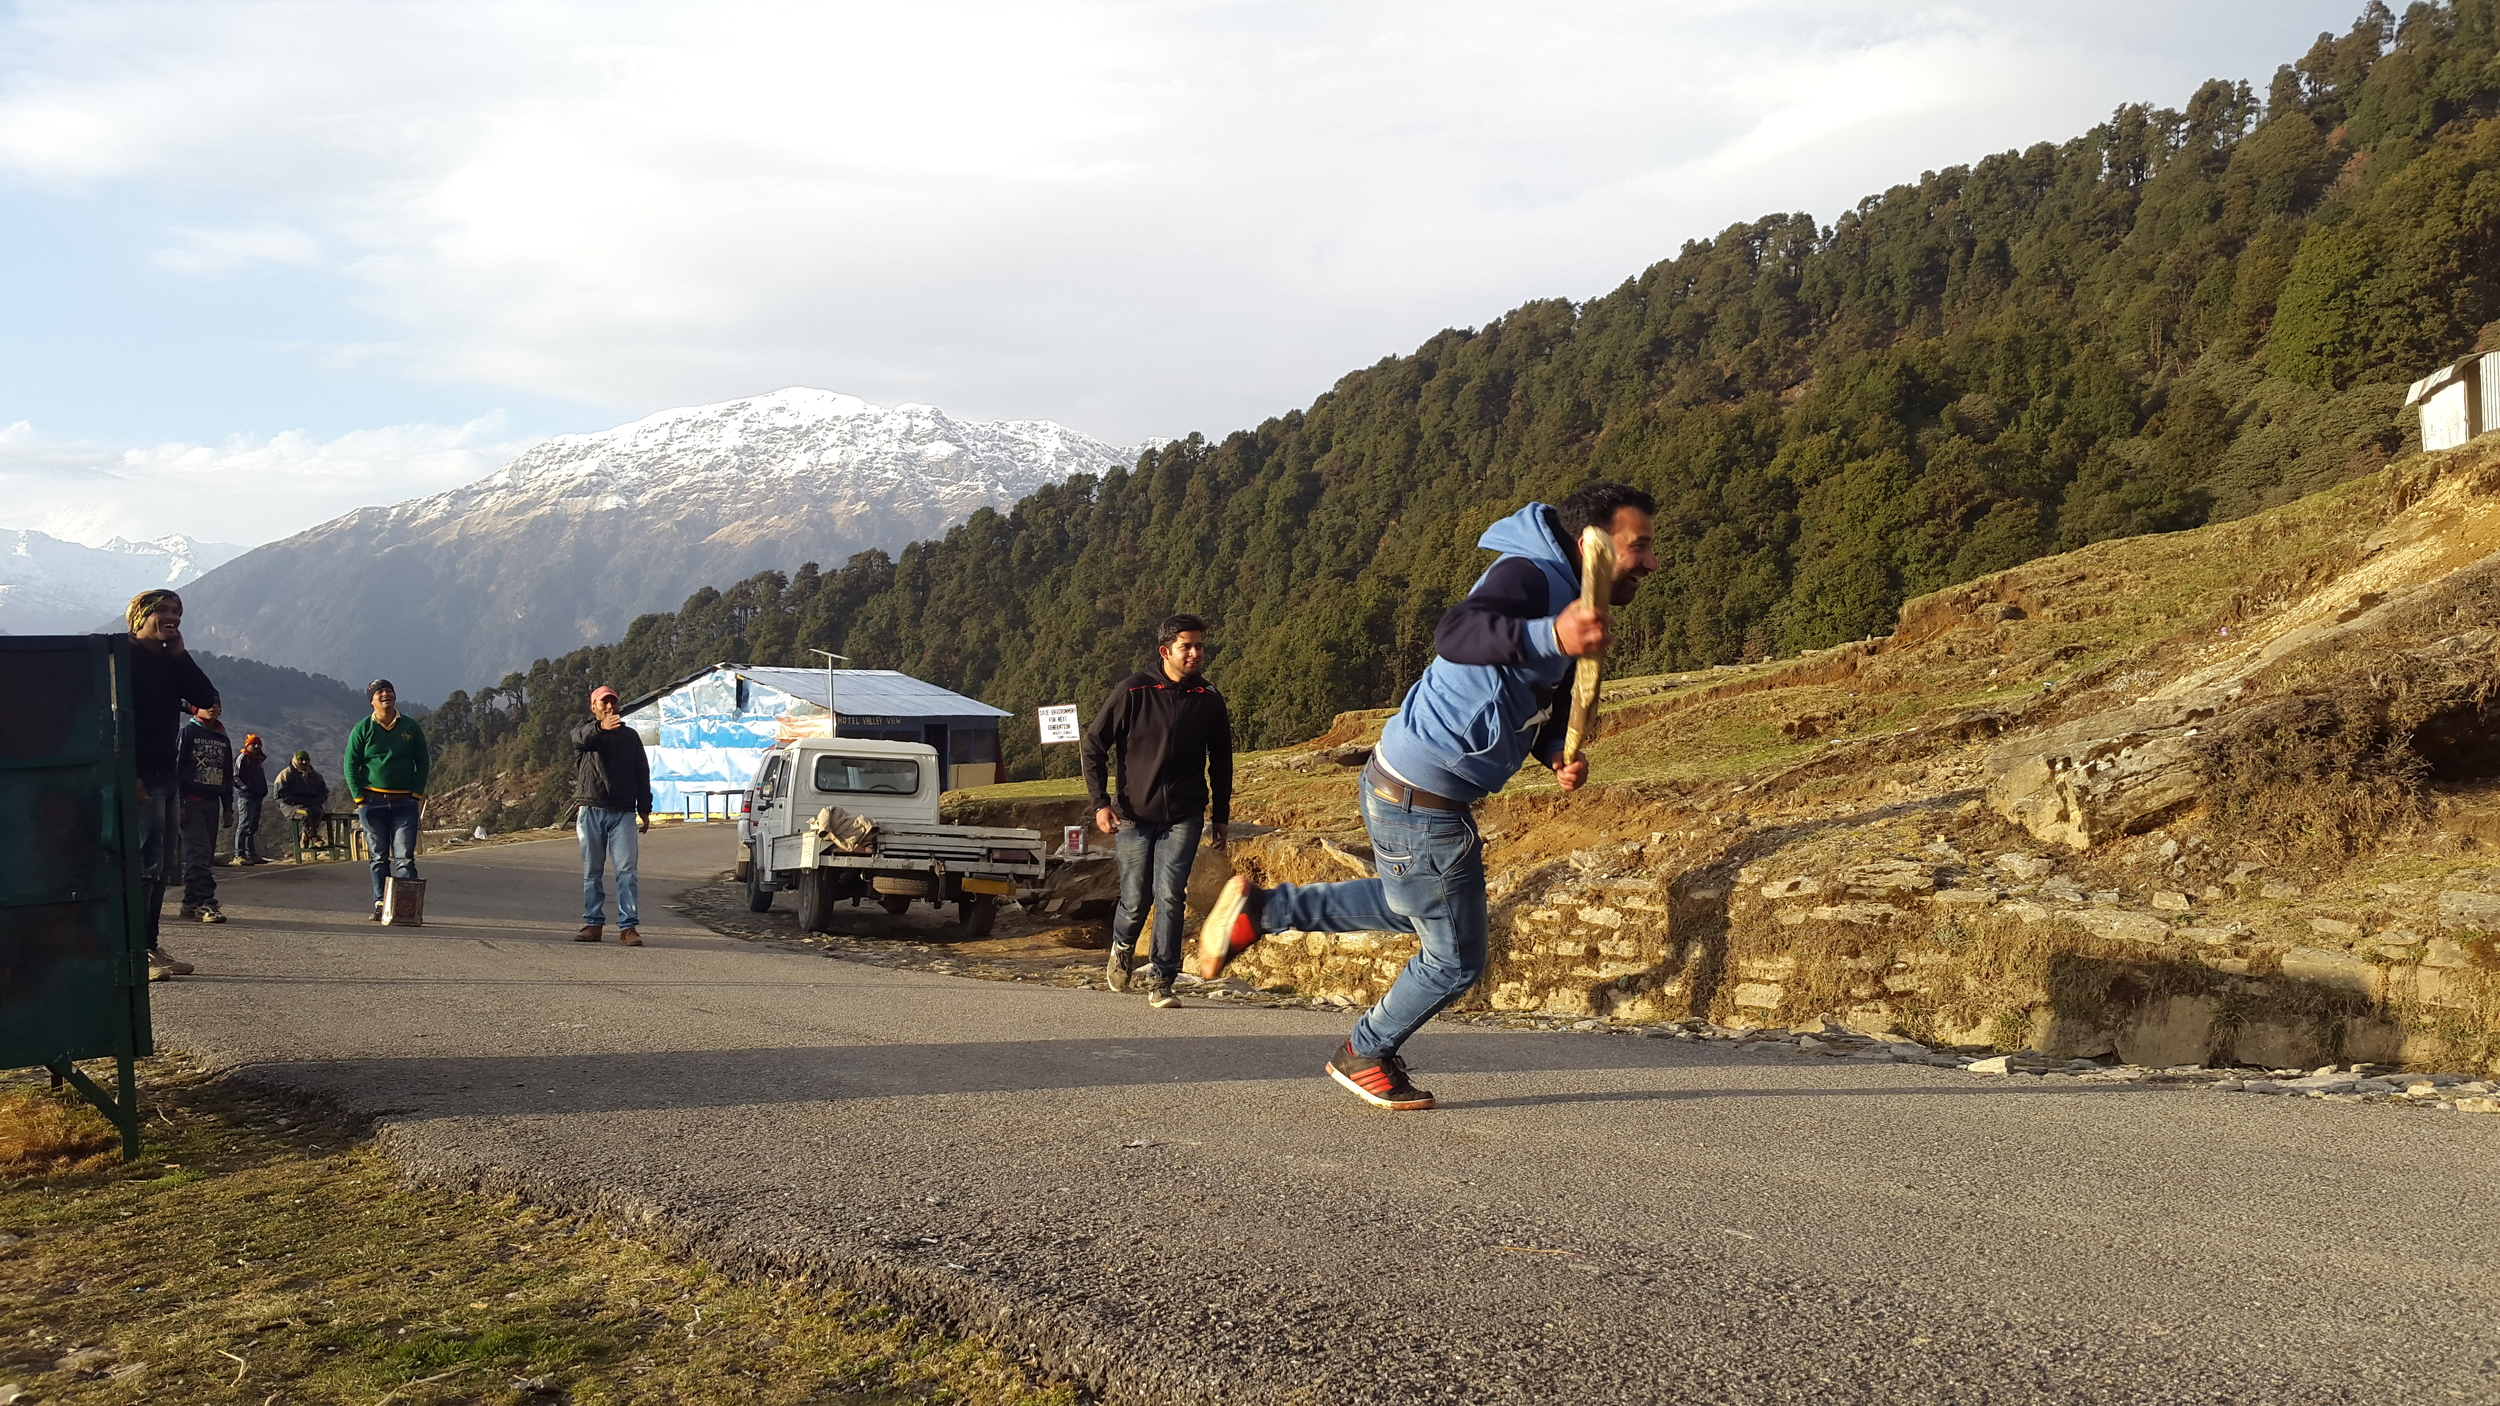 A game of cricket in the mountains. YASSSS!